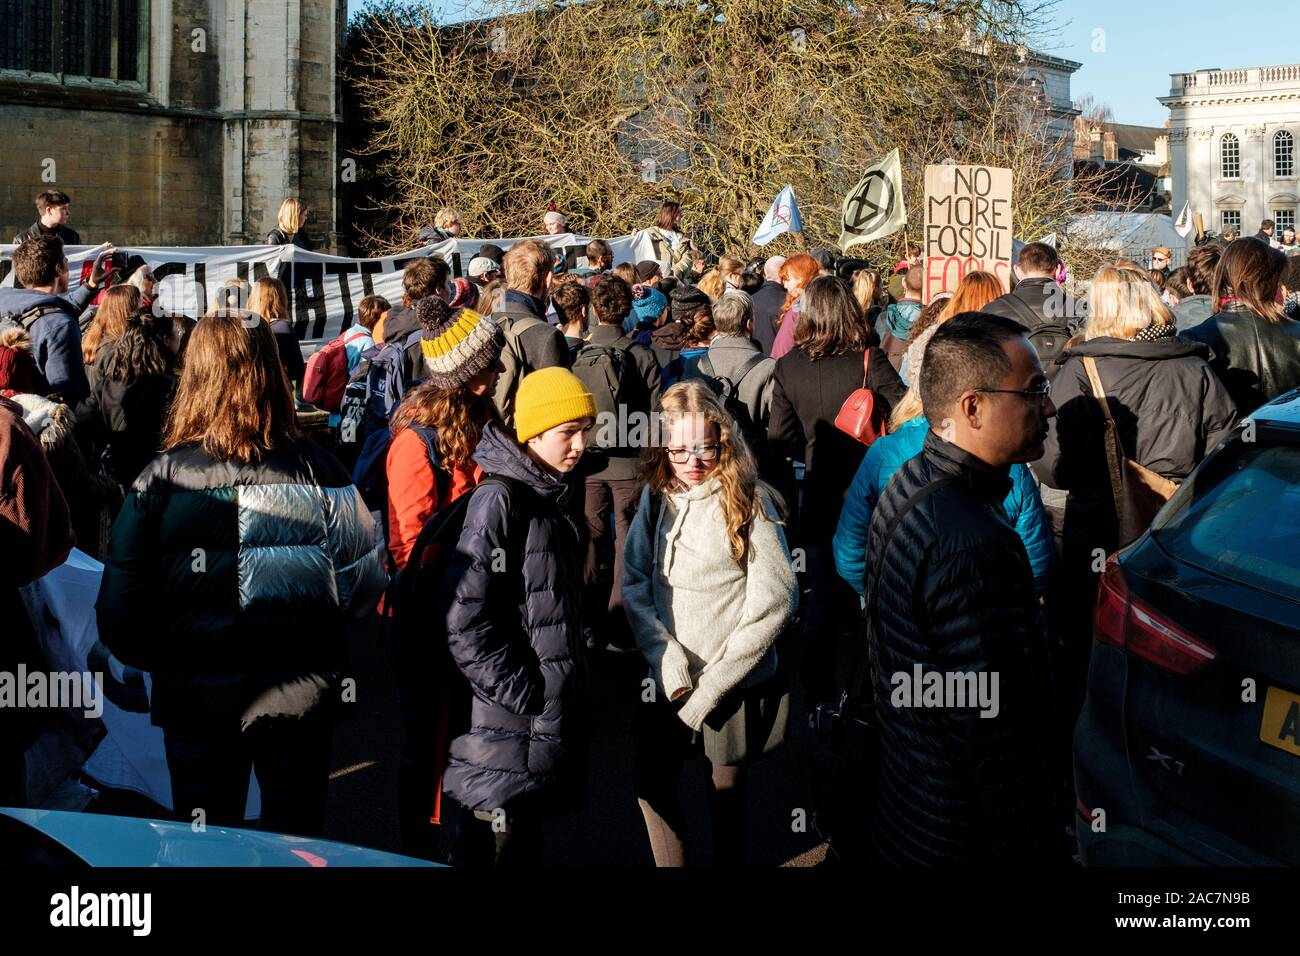 "Cambridge, UK. 29th November, 2019. YouthStrike4Climate and the Cambridge Schools Eco Council attended the global climate action day, with the theme of the strike ""Opposing Overconsumerism"" to mark Black Friday. CamNews / Alamy Live News Stock Photo"